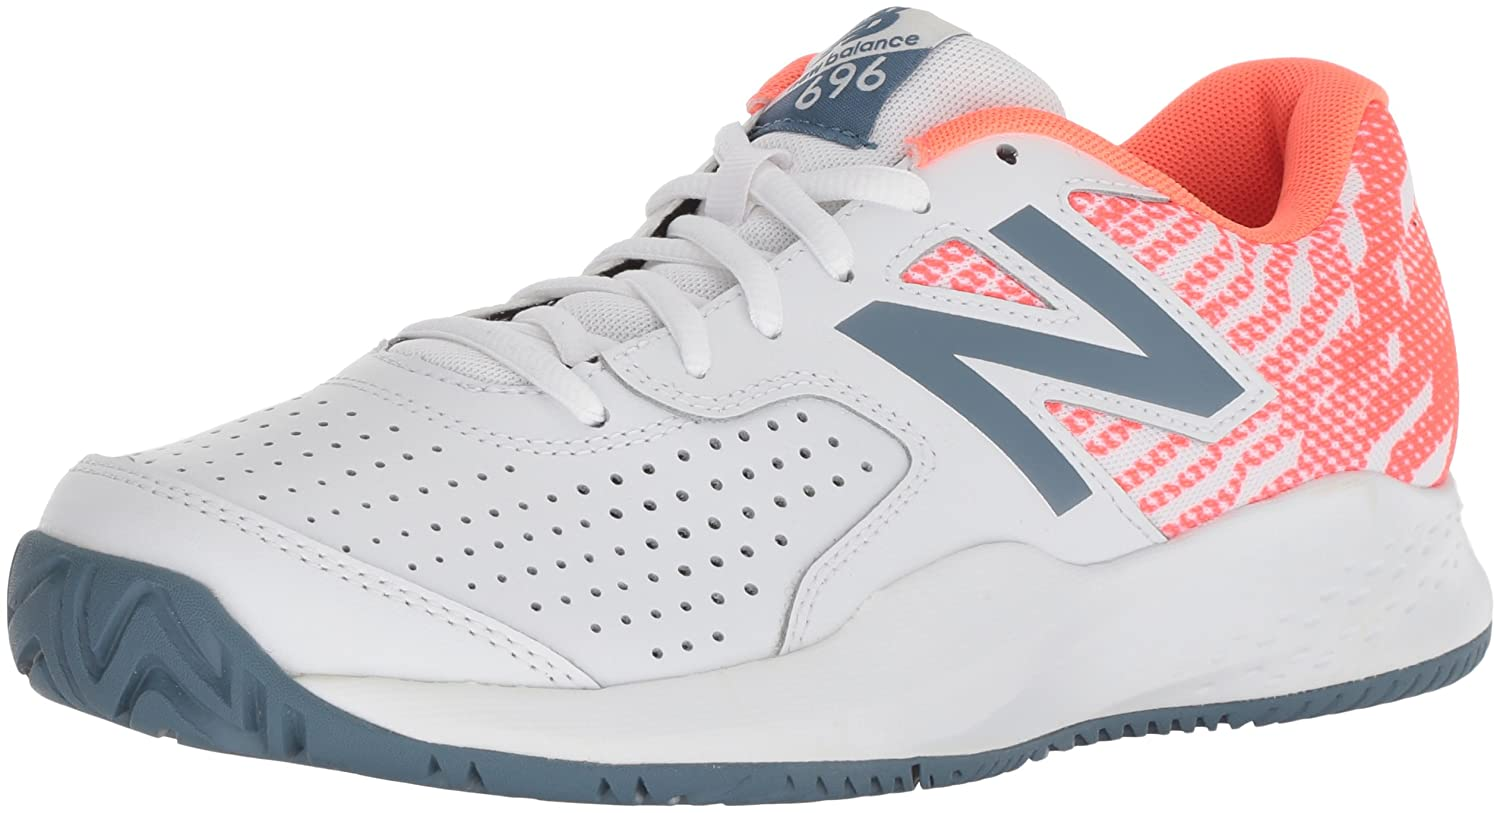 New Balance Women's 696v3 Hard Court Tennis Shoe B075R3RHK1 10 2E US|White